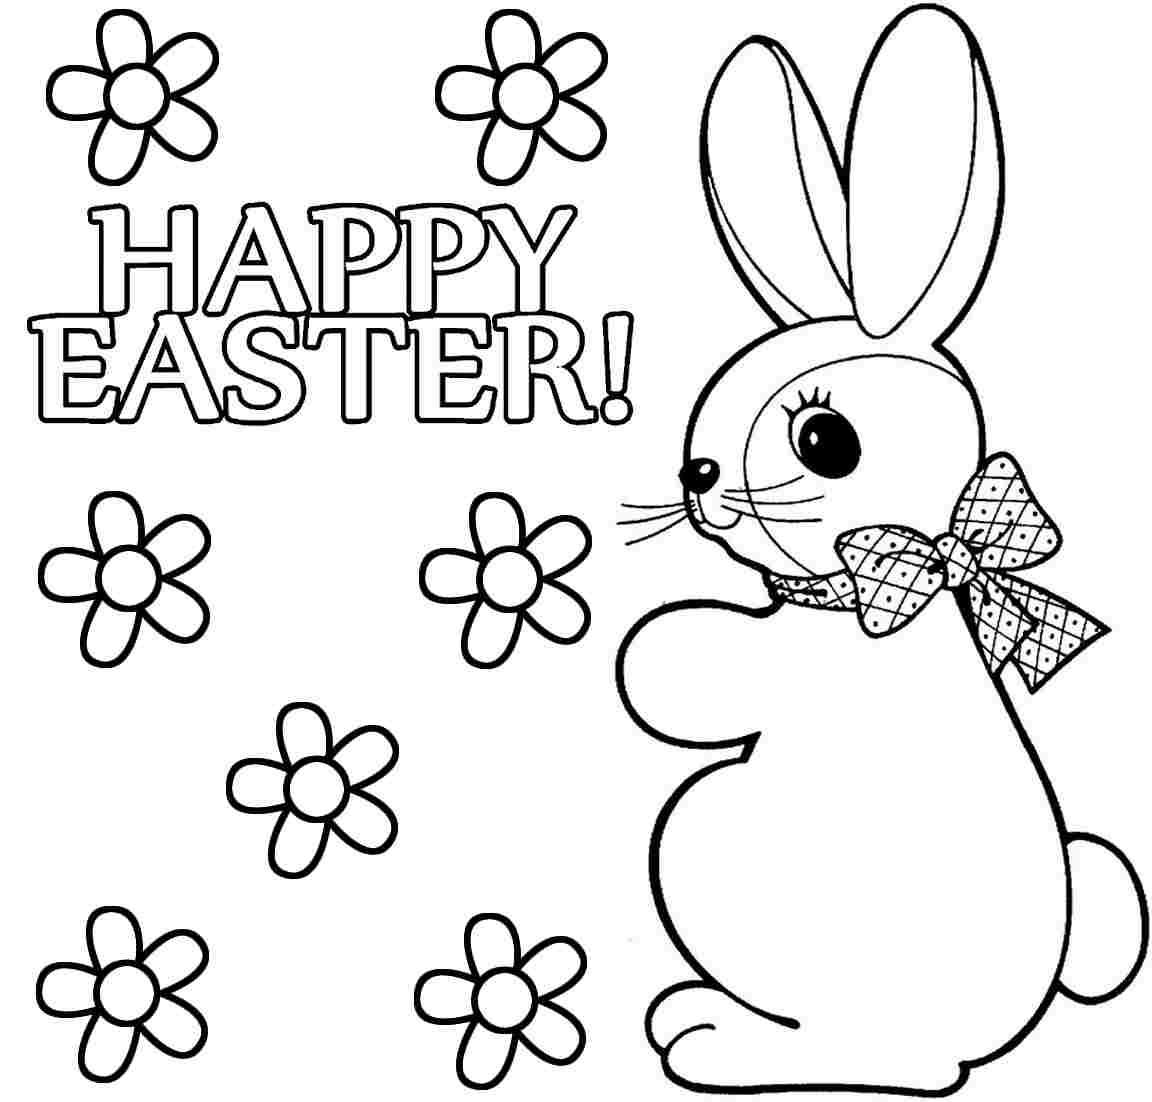 1152x1102 best easter rabbit coloring pages cute bunny page for kids - Free Coloring Pages Easter Bunny 2